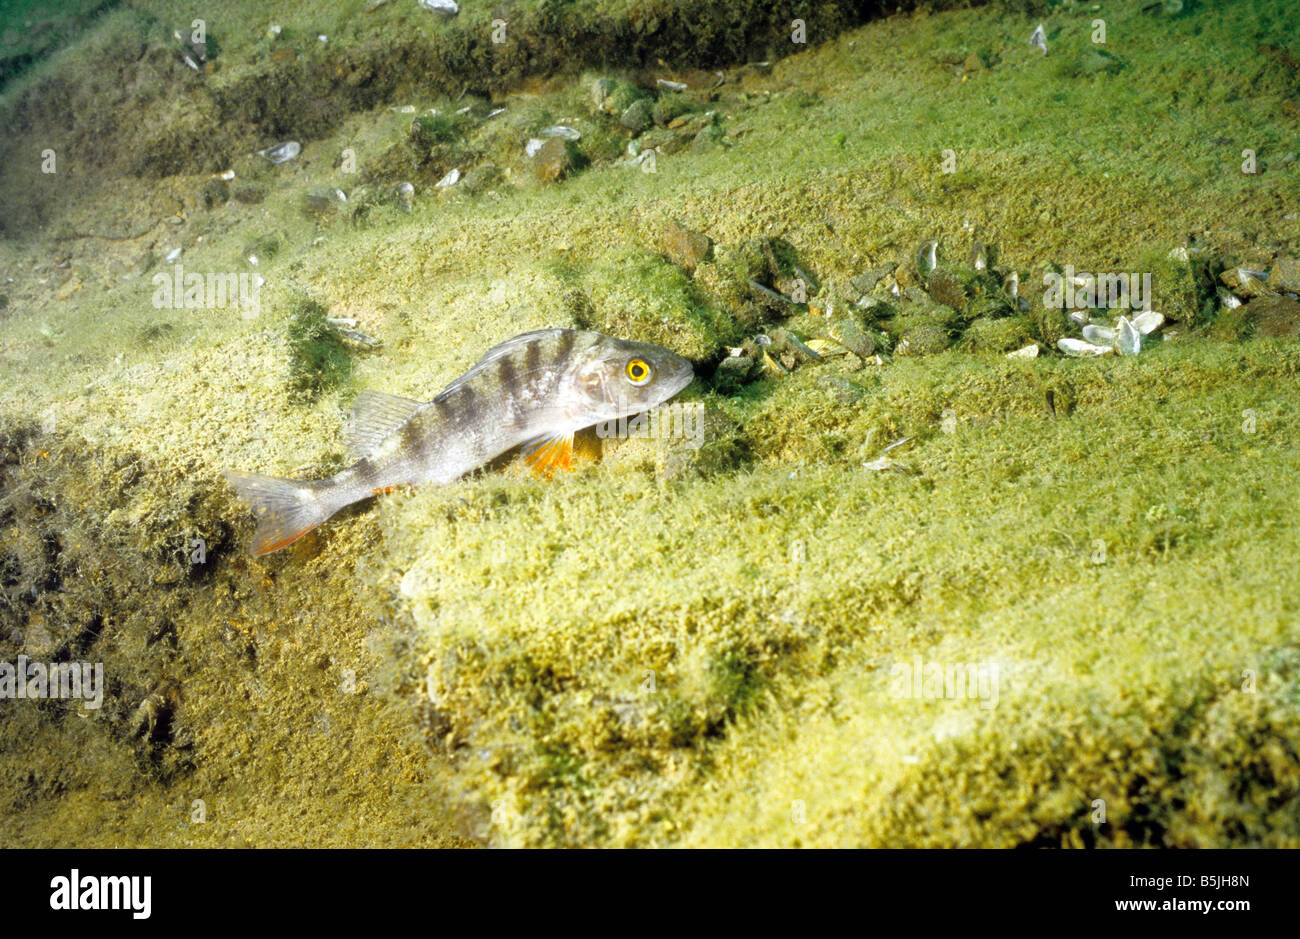 Freshwater fish england - Stock Photo Uk Freshwater Fish Perch Perca Fluviatilis Photographed In Stoney Cove Leicestershire England